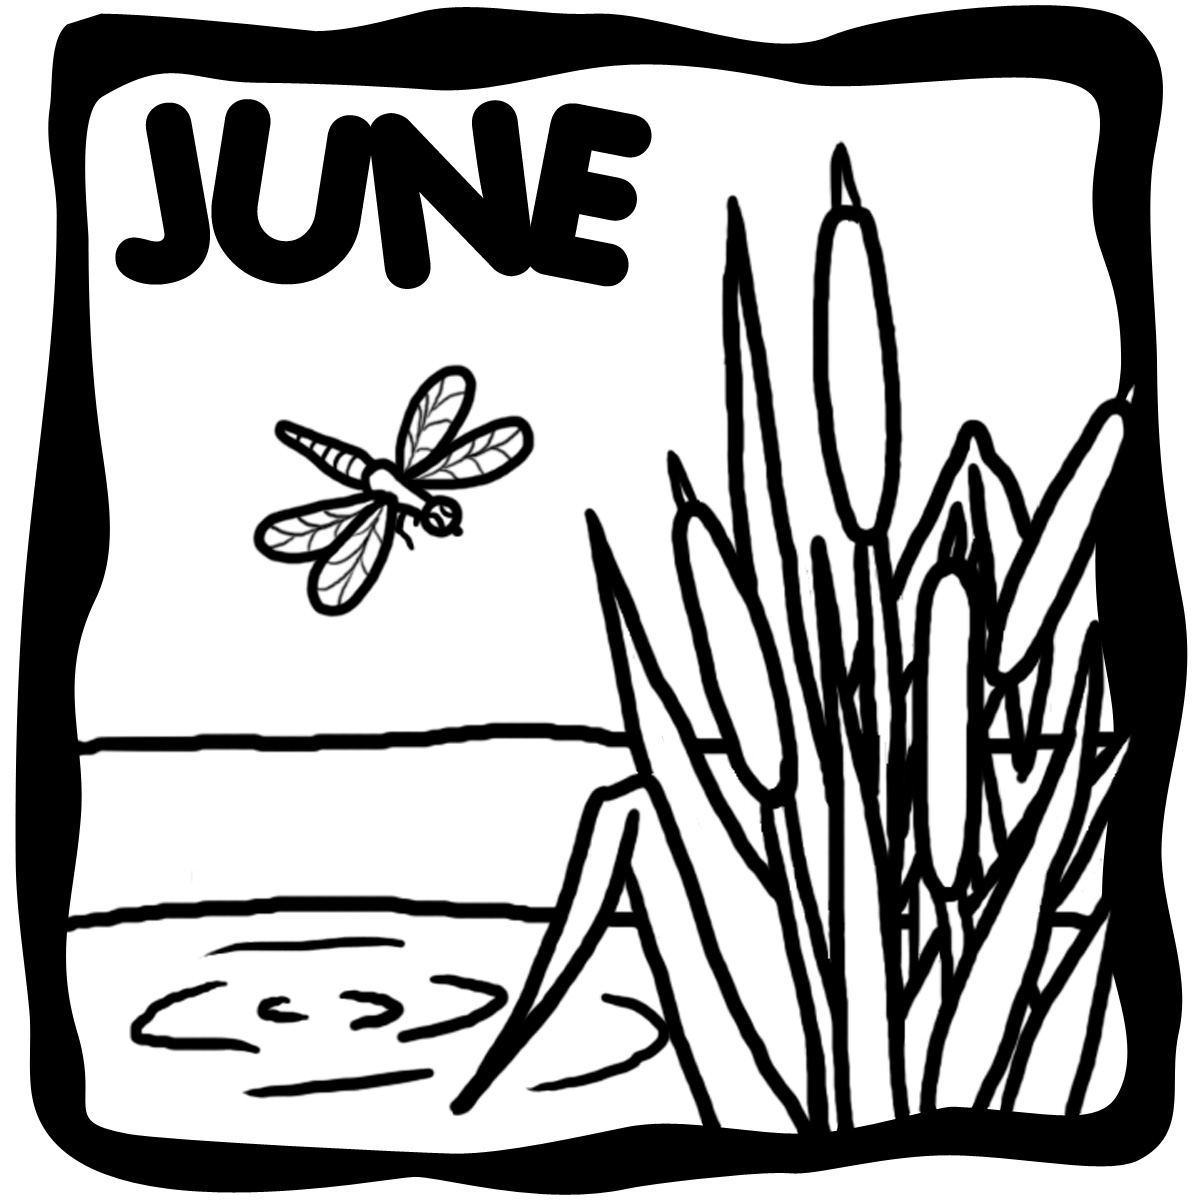 Month of june clip art clip art Month Of June Black And White Clipart clip art